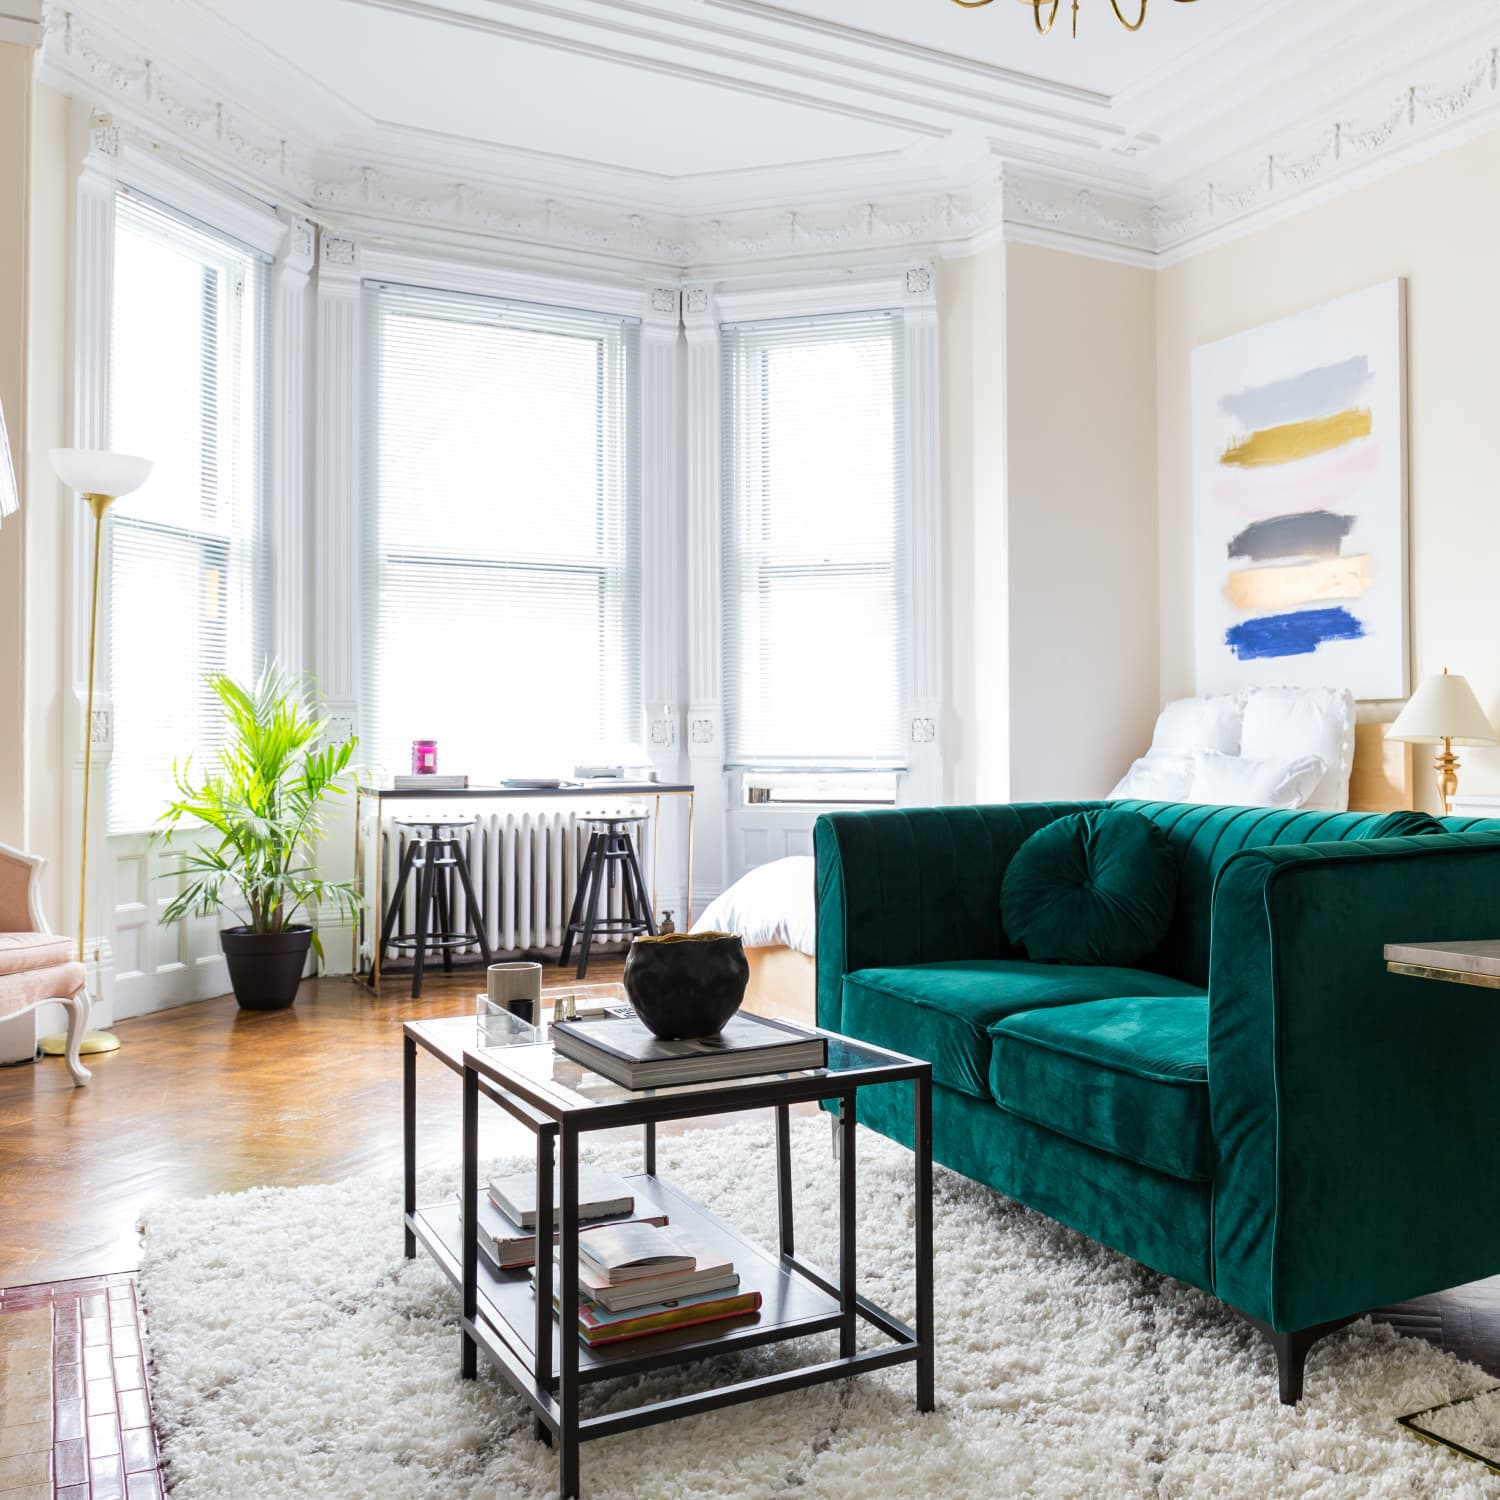 Picture of: 10 Stylish Functional C Tables To Use Next To A Sofa Or Chair Apartment Therapy